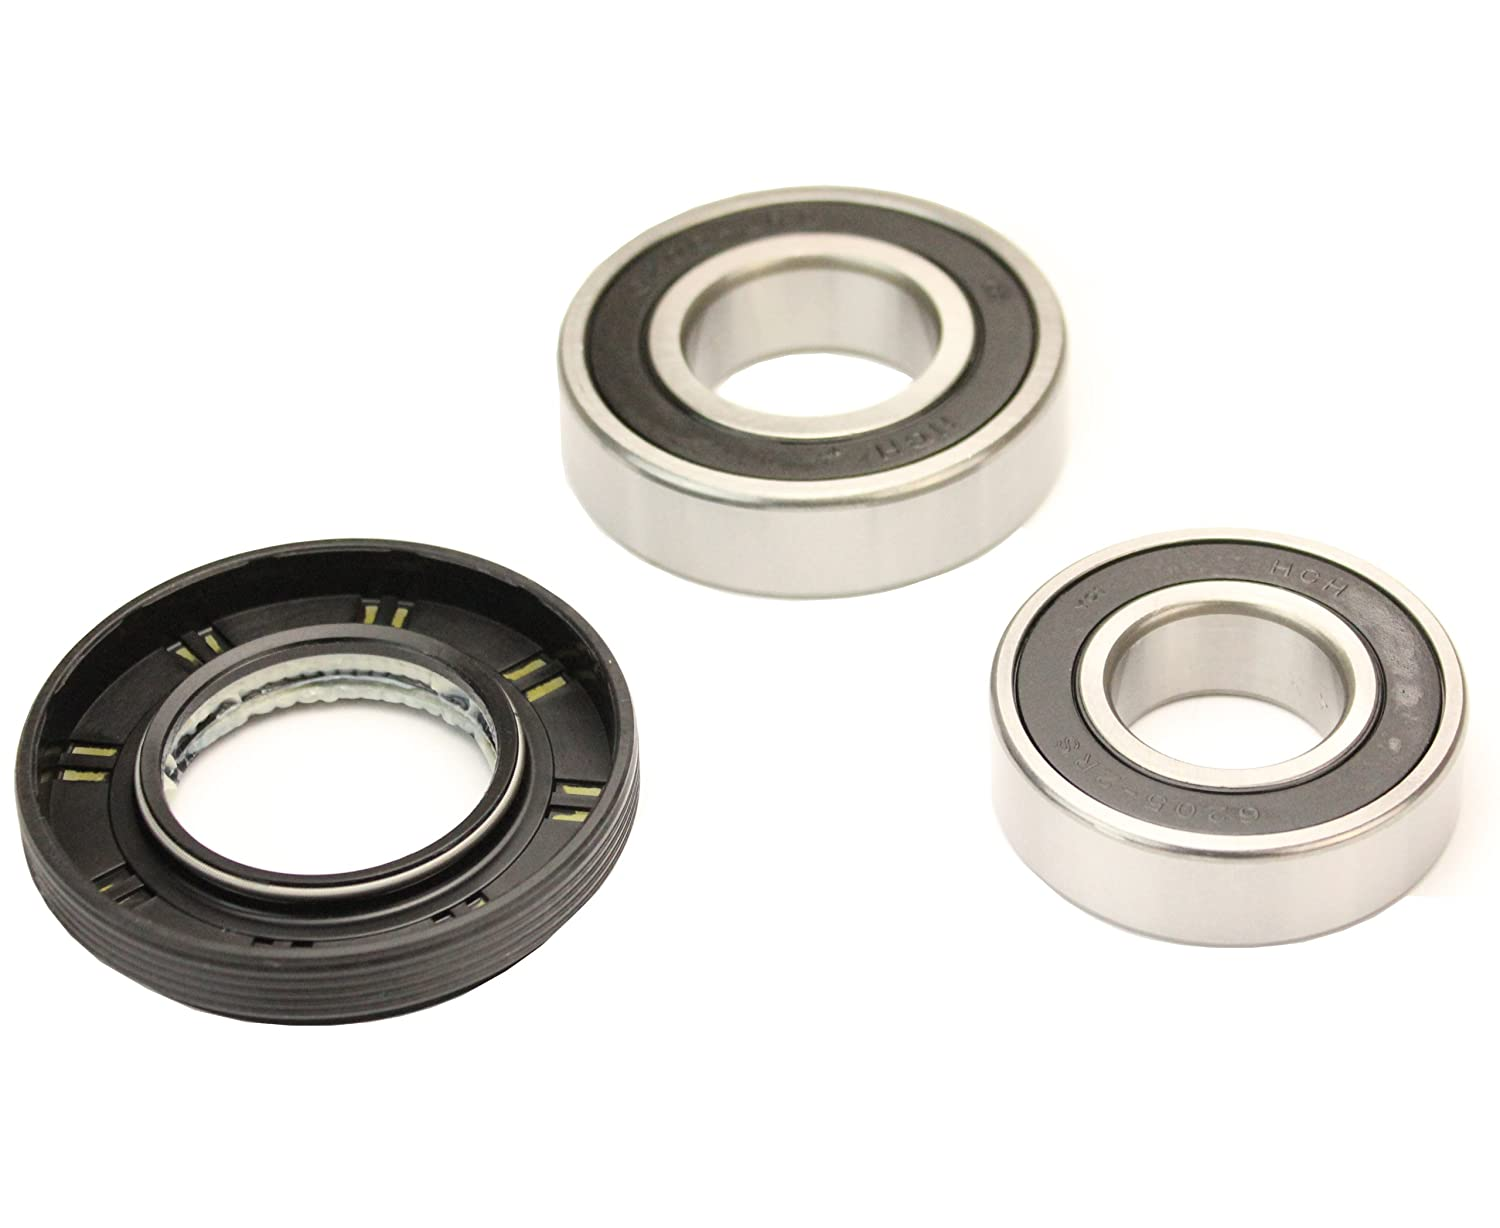 First4spares Drum Bearings and Seal Kit for LG Washing Machines